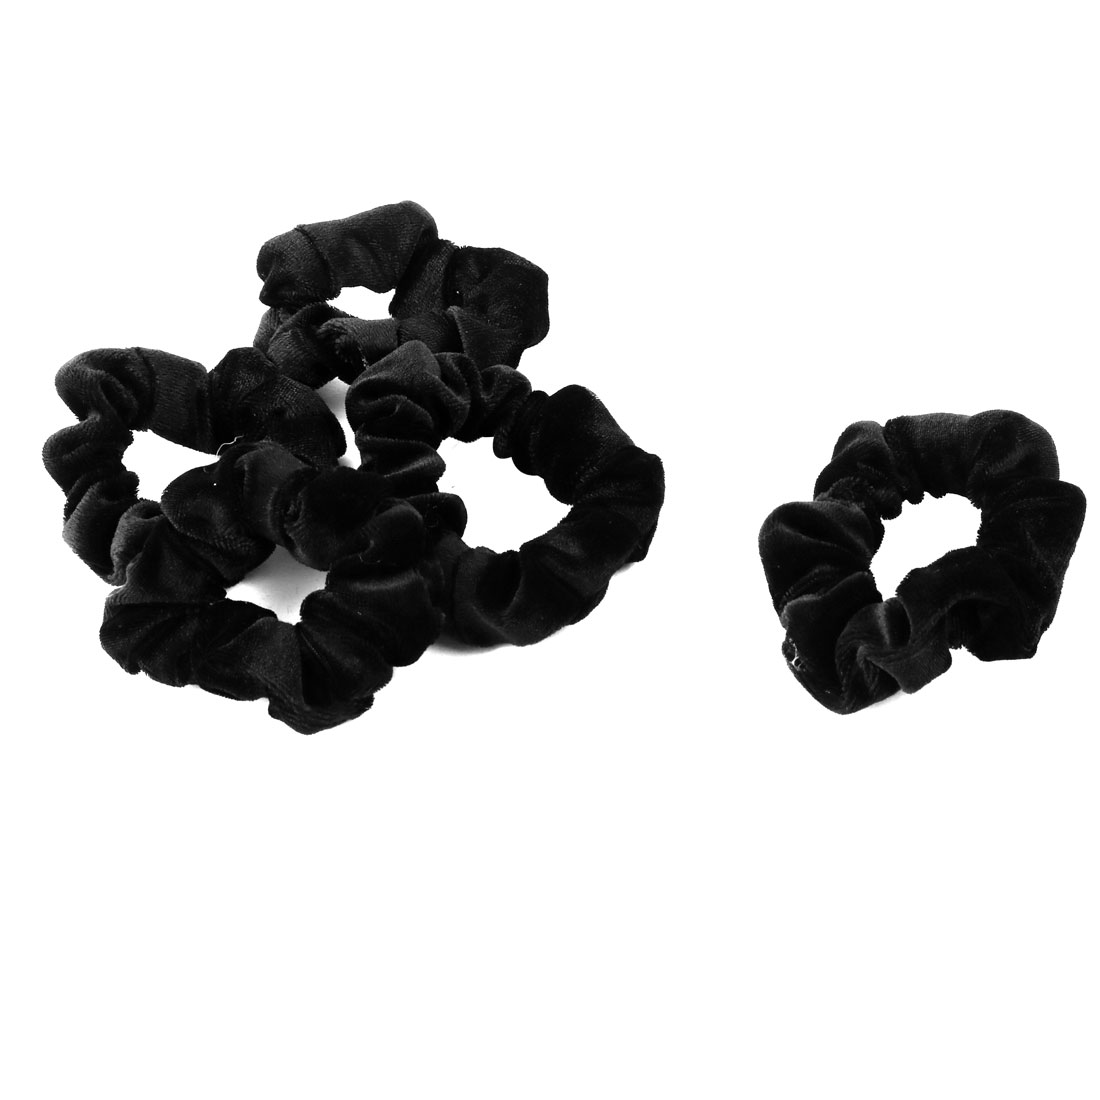 Women Hairstyle Velvet Elastic Hair Tie Band Ponytail Holder Black 5 PCS